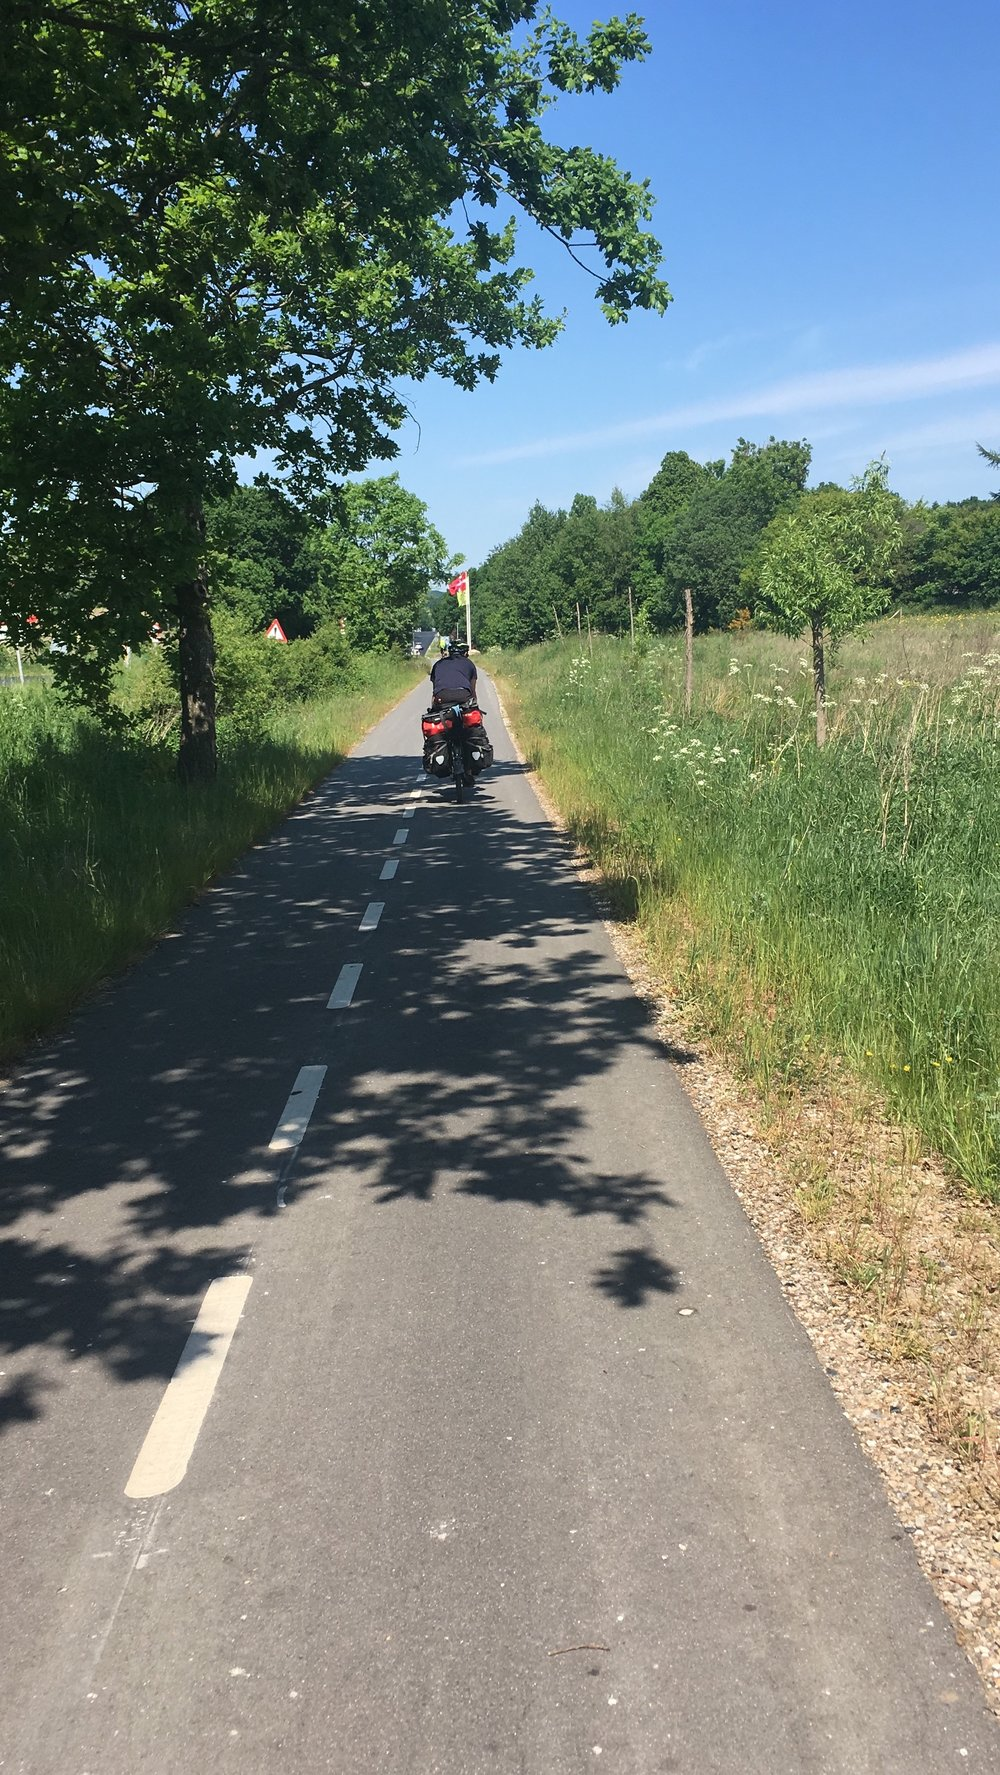 Denmark has an excellent cycle highway system, which keeps you completely off the road.